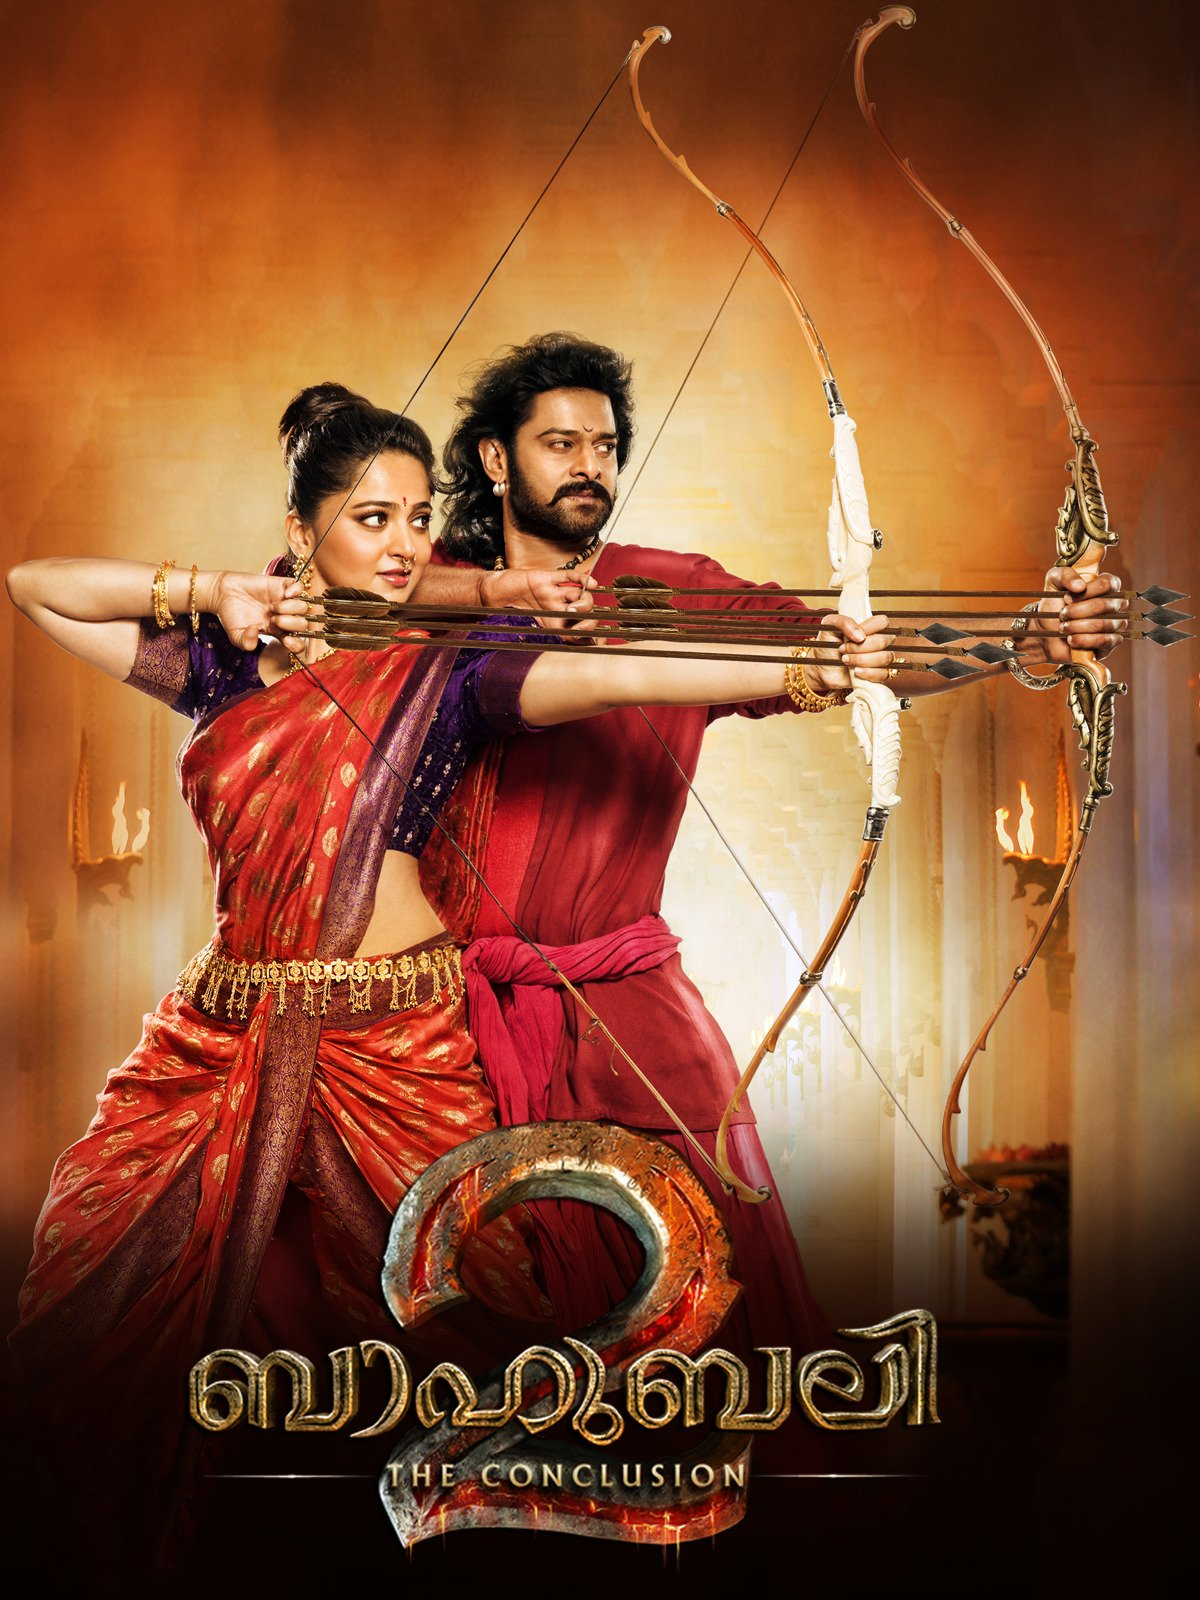 Baahubali 2 The Conclusion (2017) Malayalam – 1080p – BluRay – x264 – DTS-HDMA 5.1 – 13GB